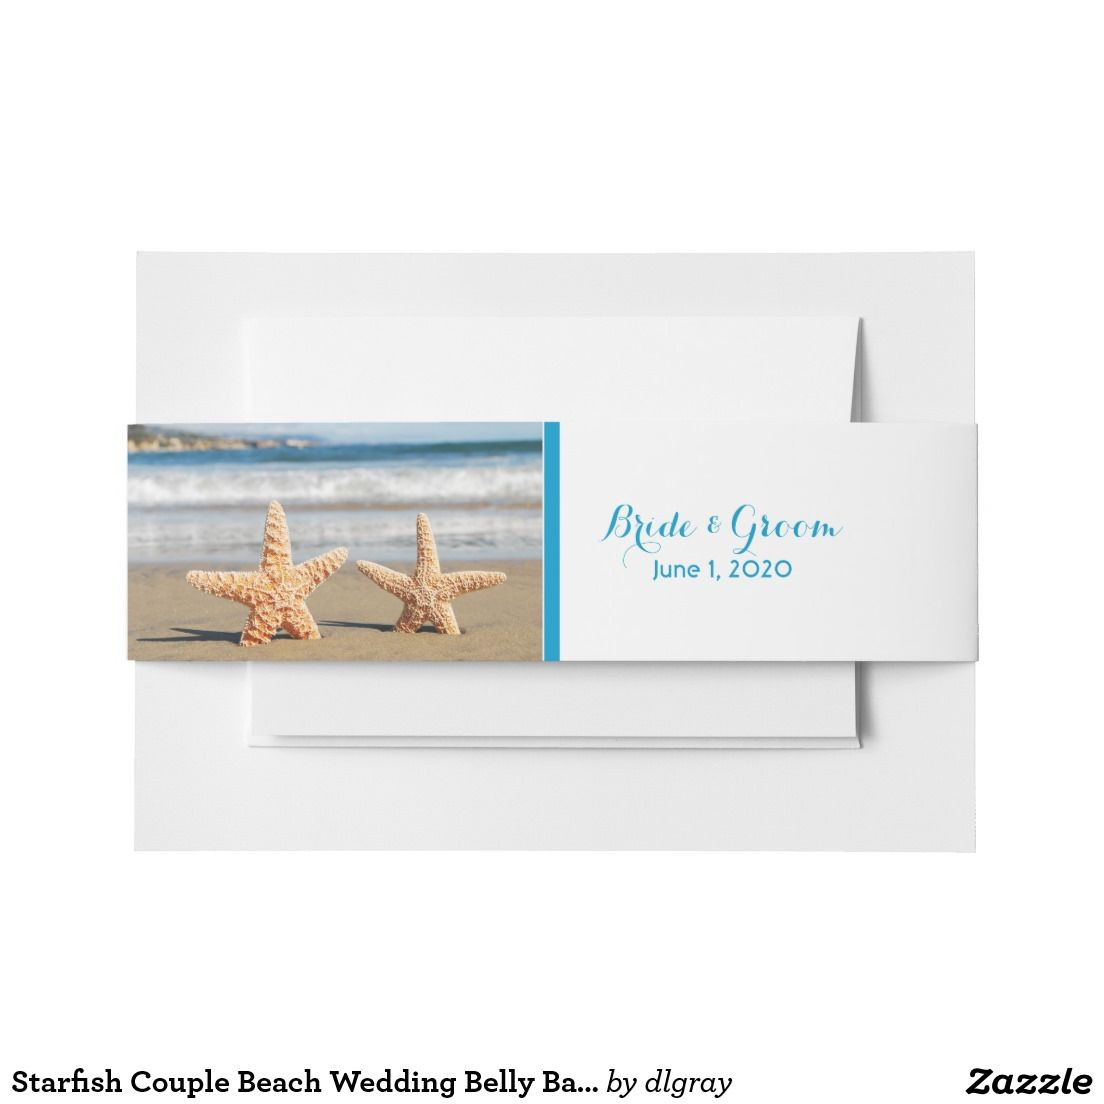 Starfish Couple Beach Wedding Belly Bands Invitation Belly Band